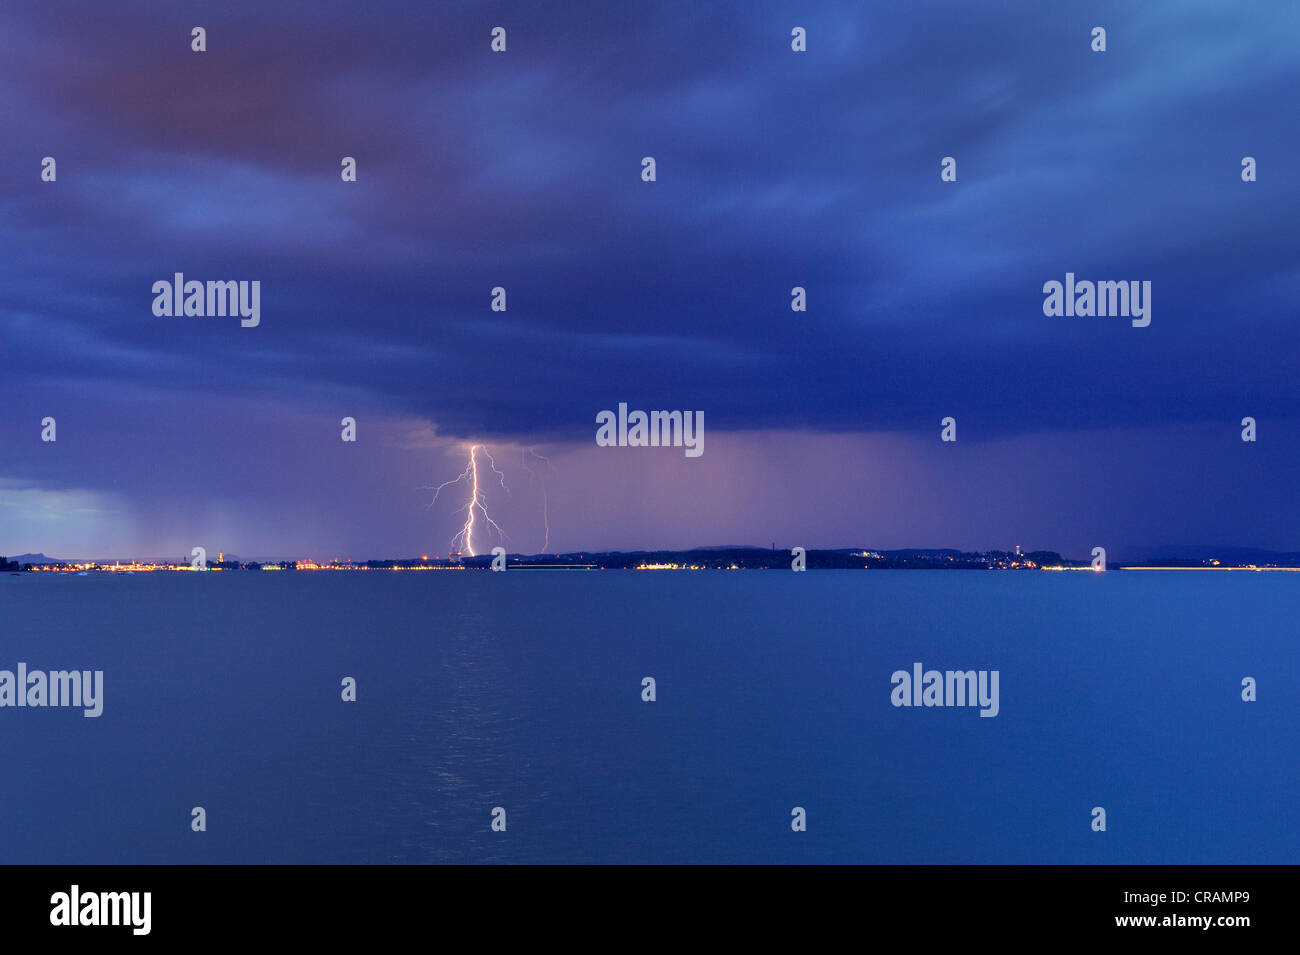 Storm clouds, heavy rain and lightning storm over Konstanz on Lake Constance, Baden-Wuerttemberg, Germany, Europe Stock Photo